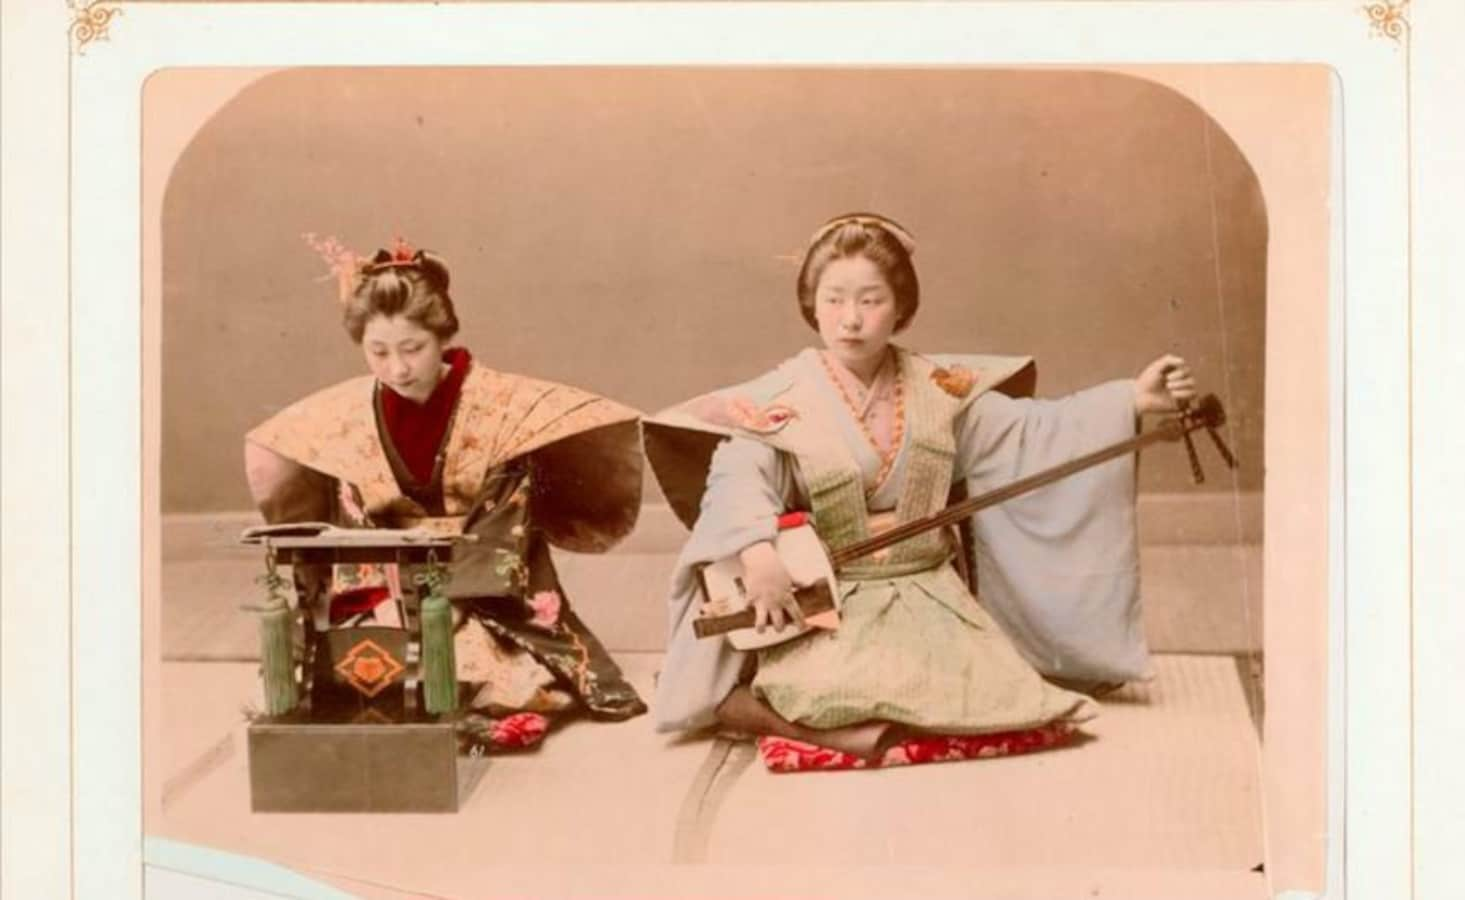 A Glimpse of Life in the 1800s | All About Japan